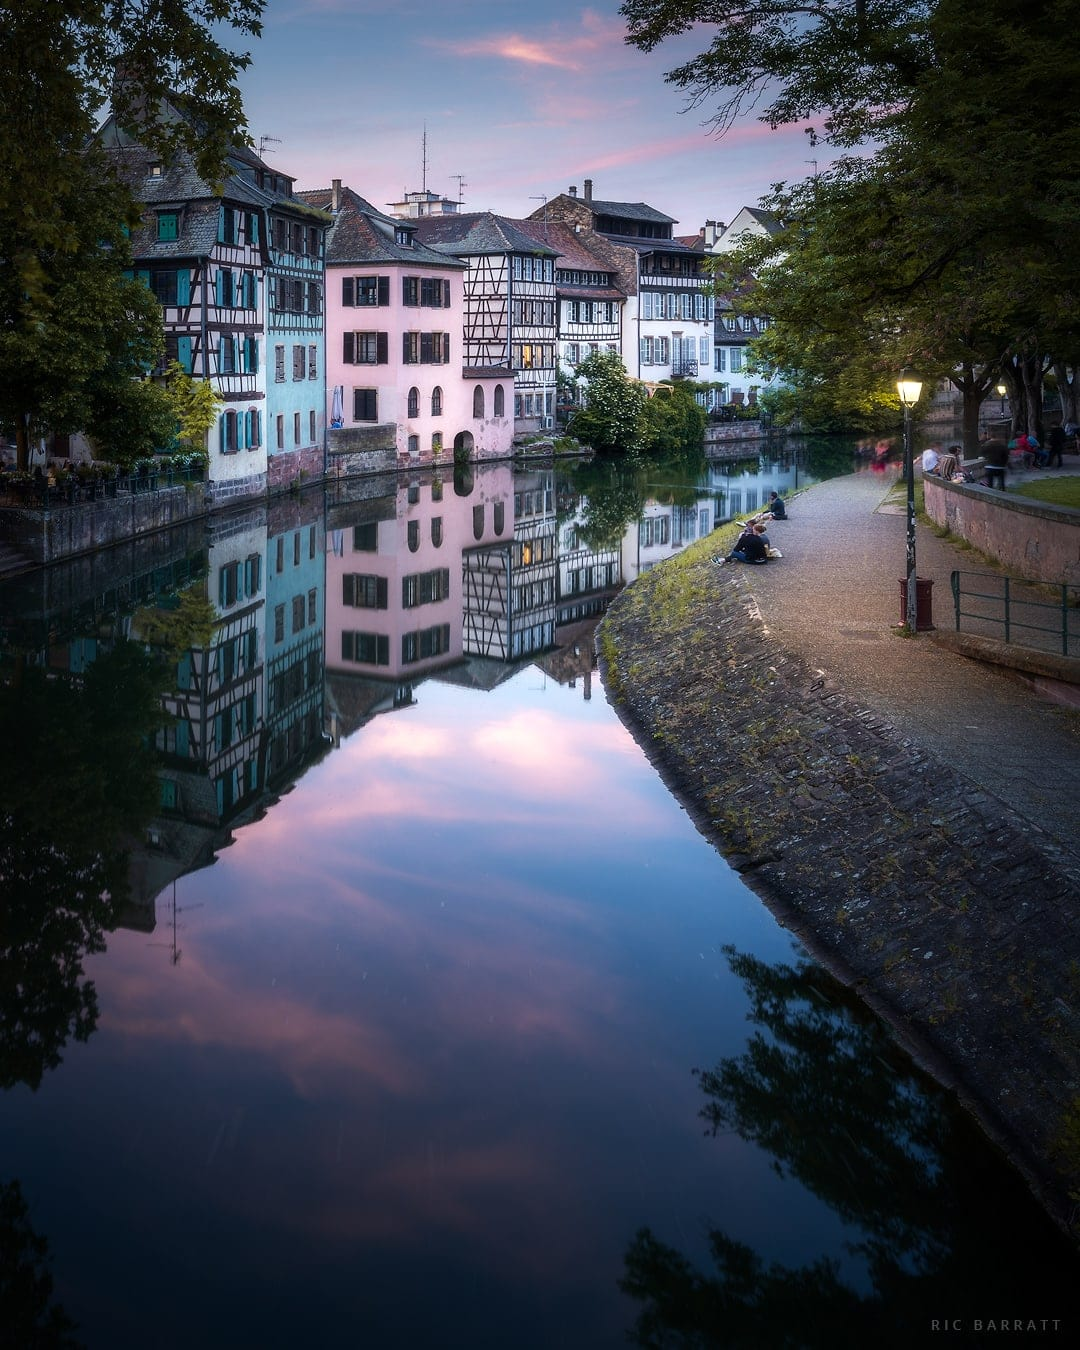 A clam, peaceful river leads its way past the half-timbered houses at dusk.